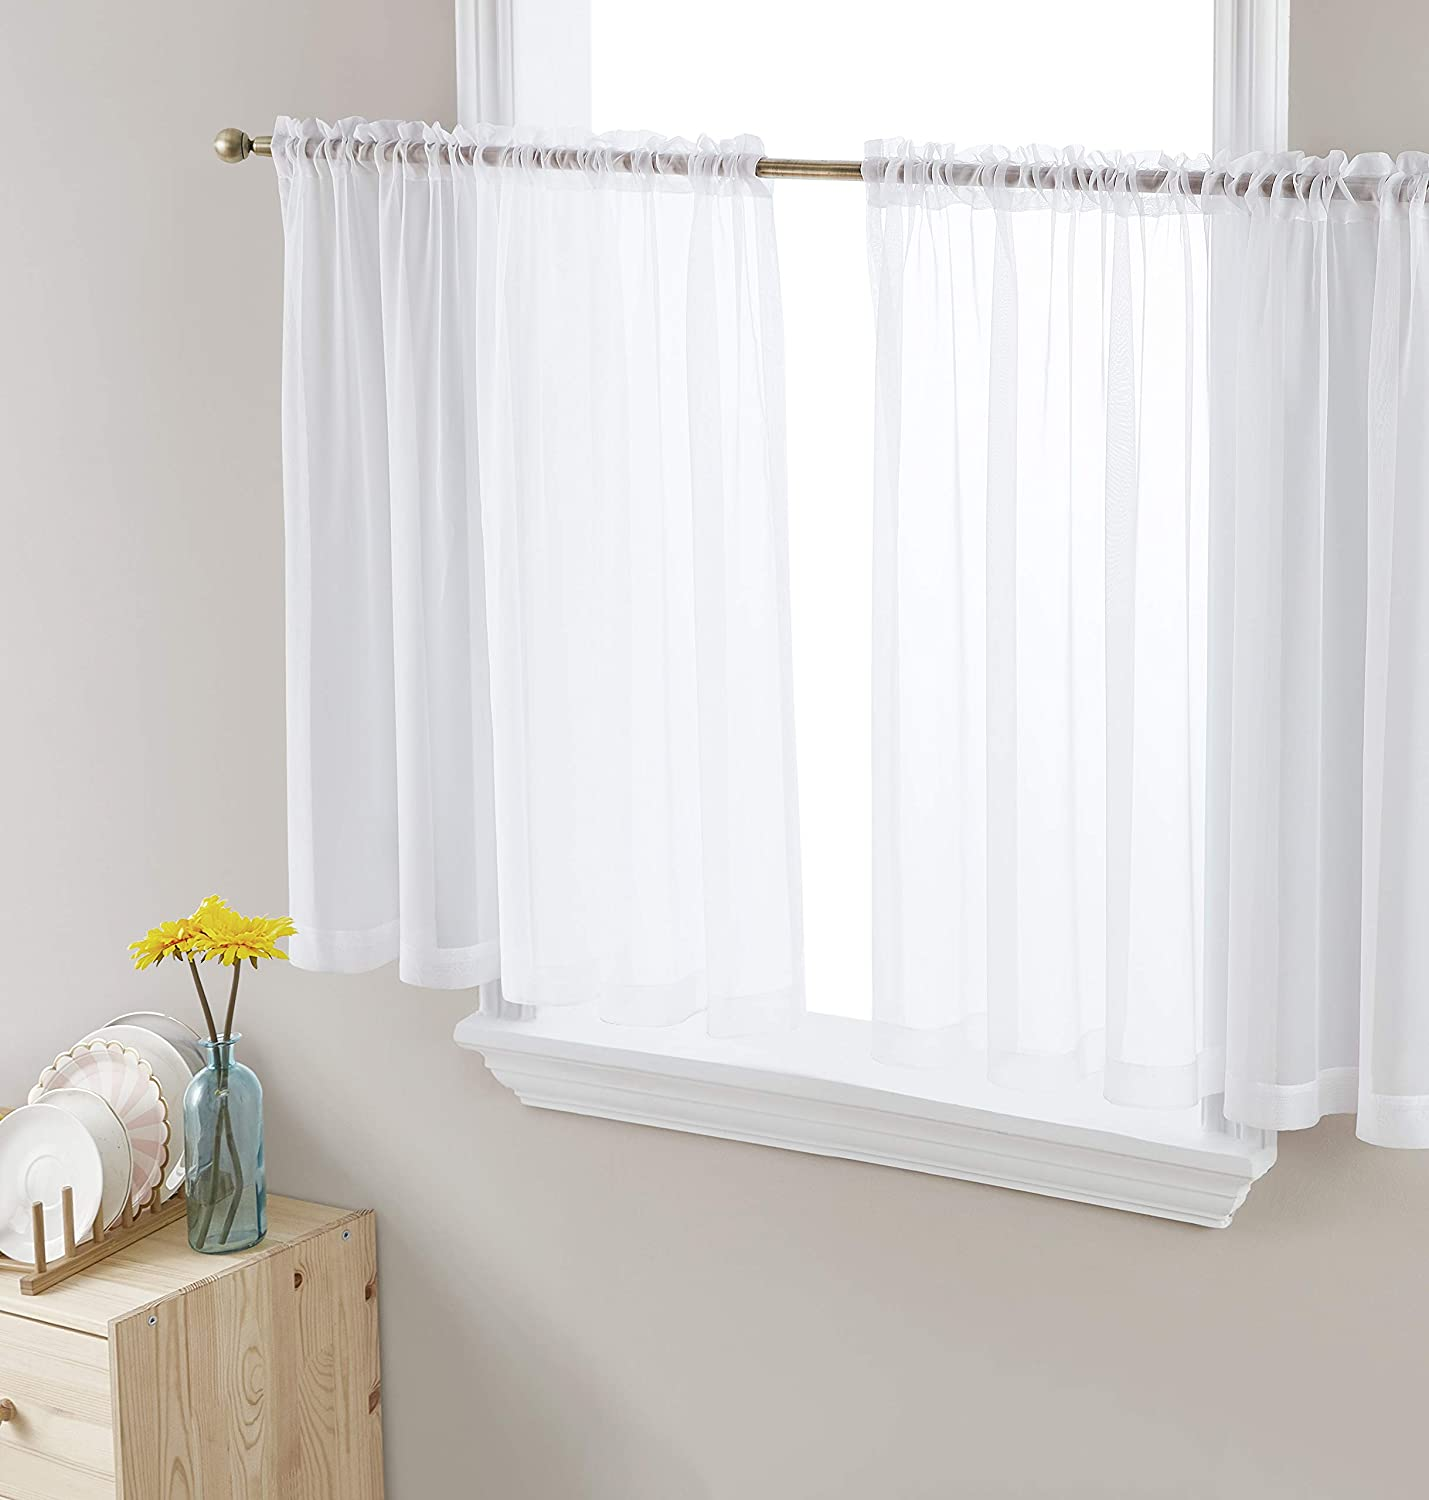 HLC.ME White 67% OFF of fixed price Window Curtain Limited price sale Short Sheer Cafe Pocket Voile Rod Ti